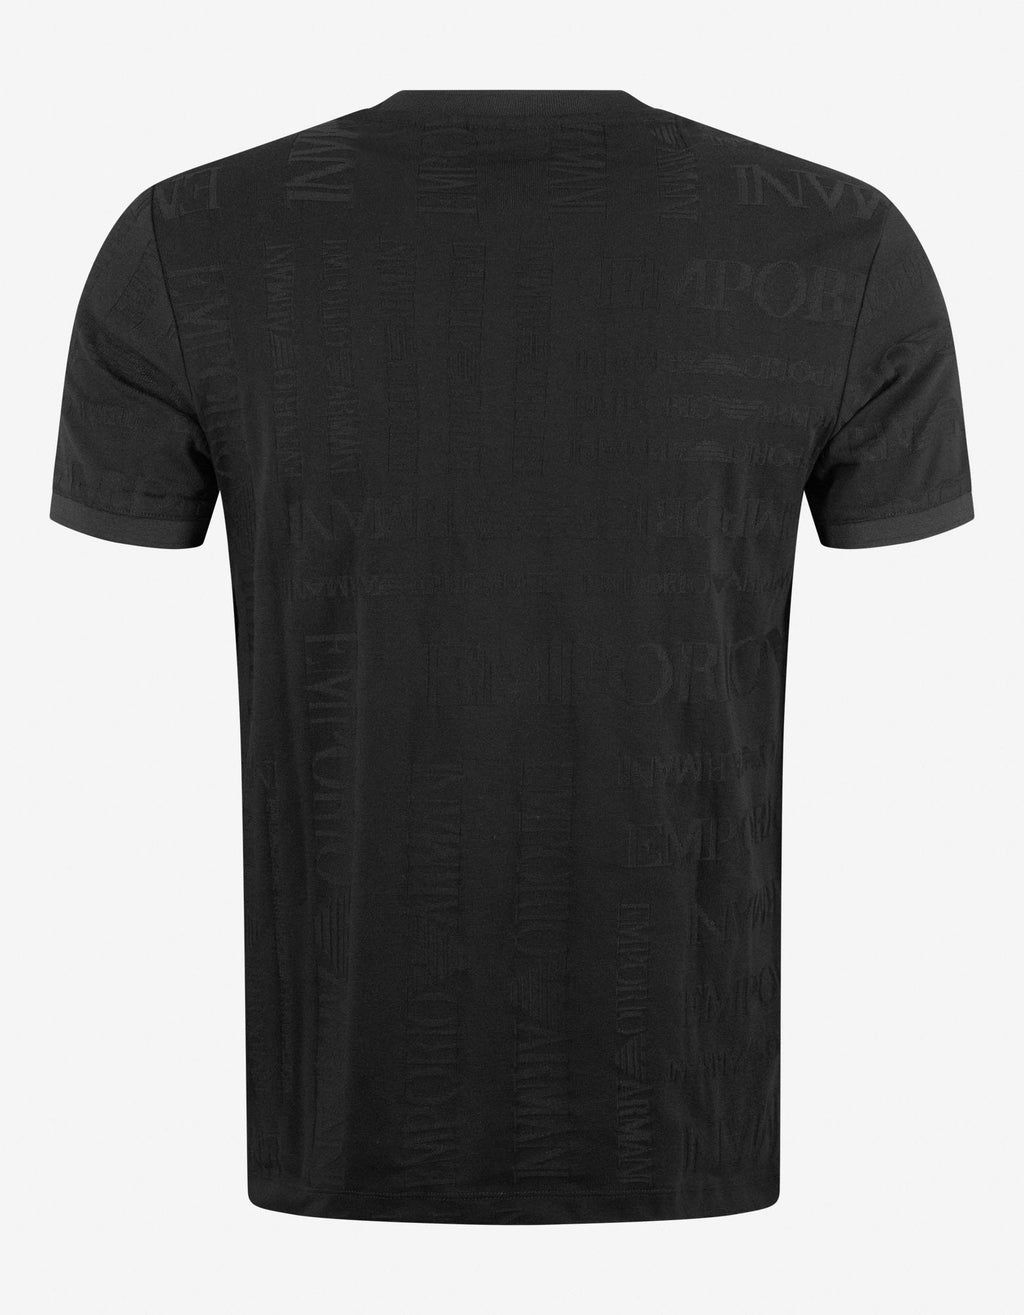 Black All-Over Jacquard Logo T-Shirt -